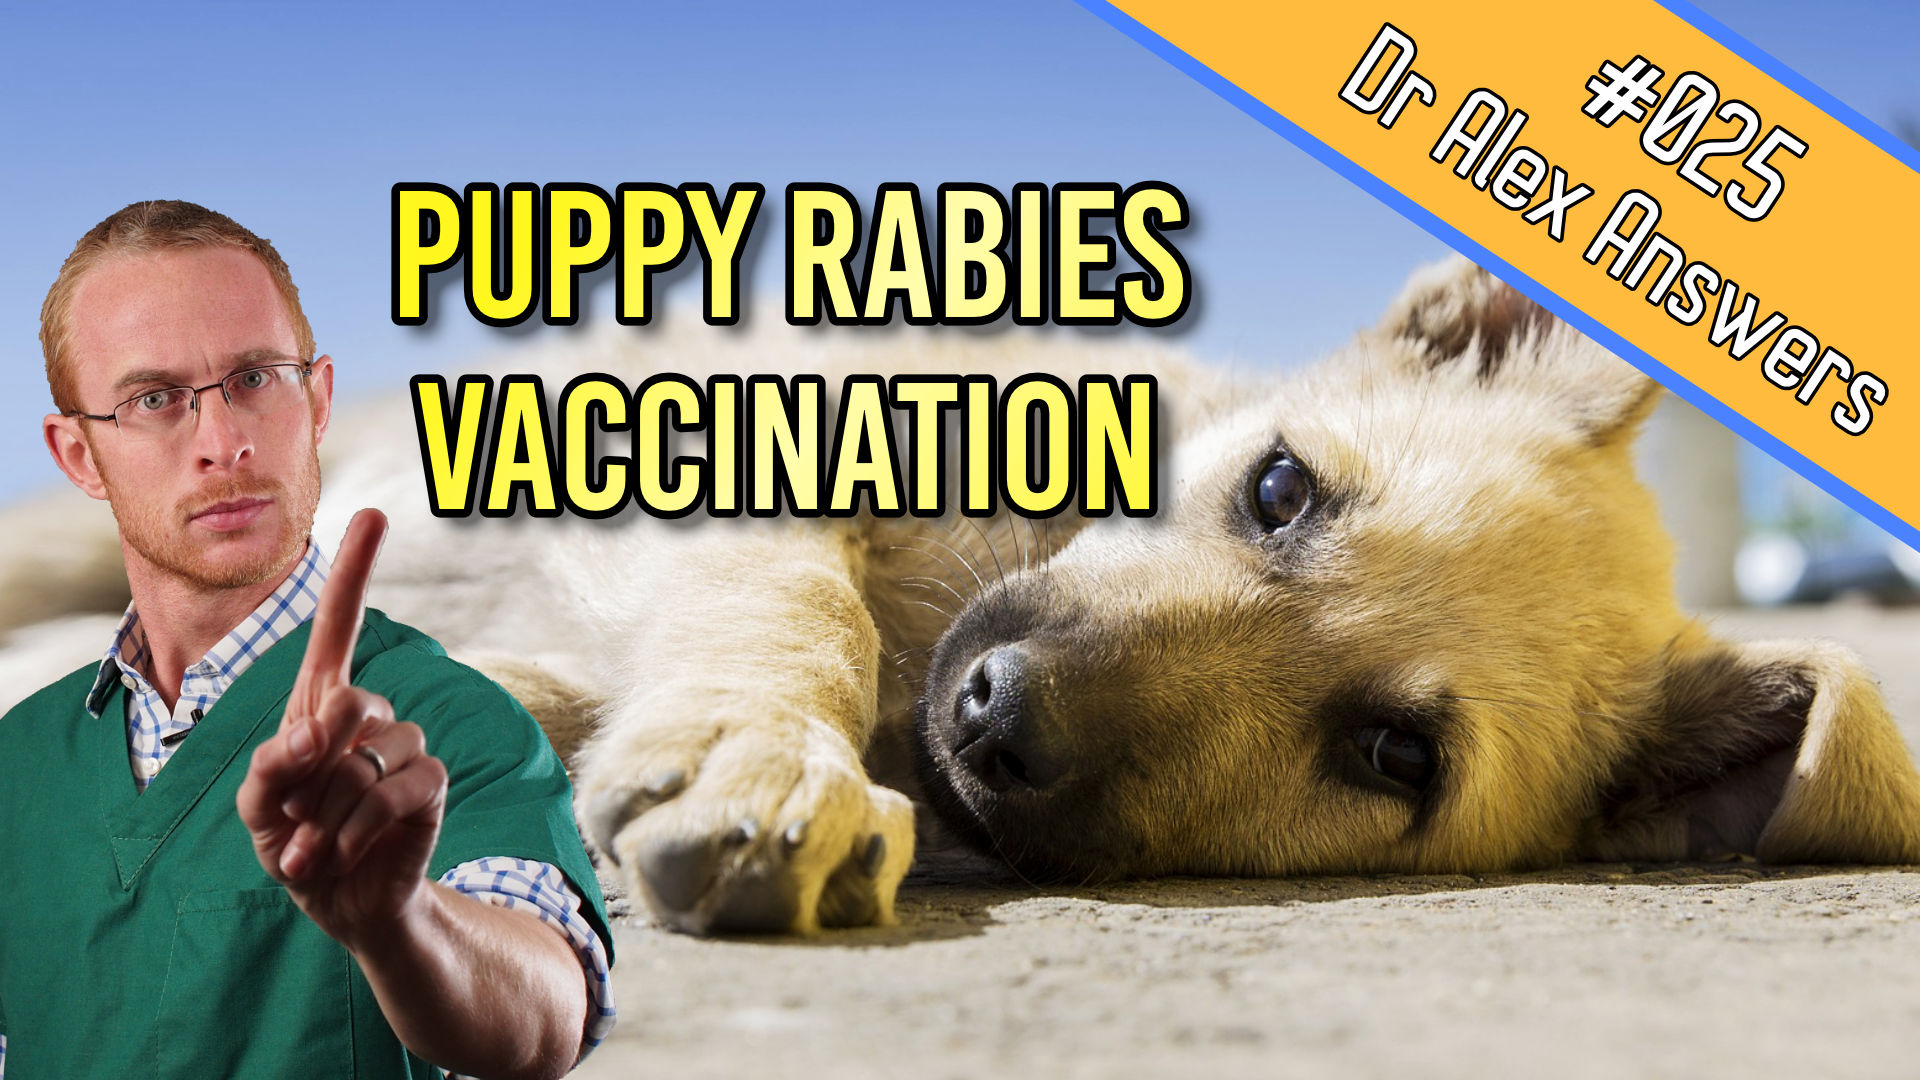 puppy rabies vaccination.jpg